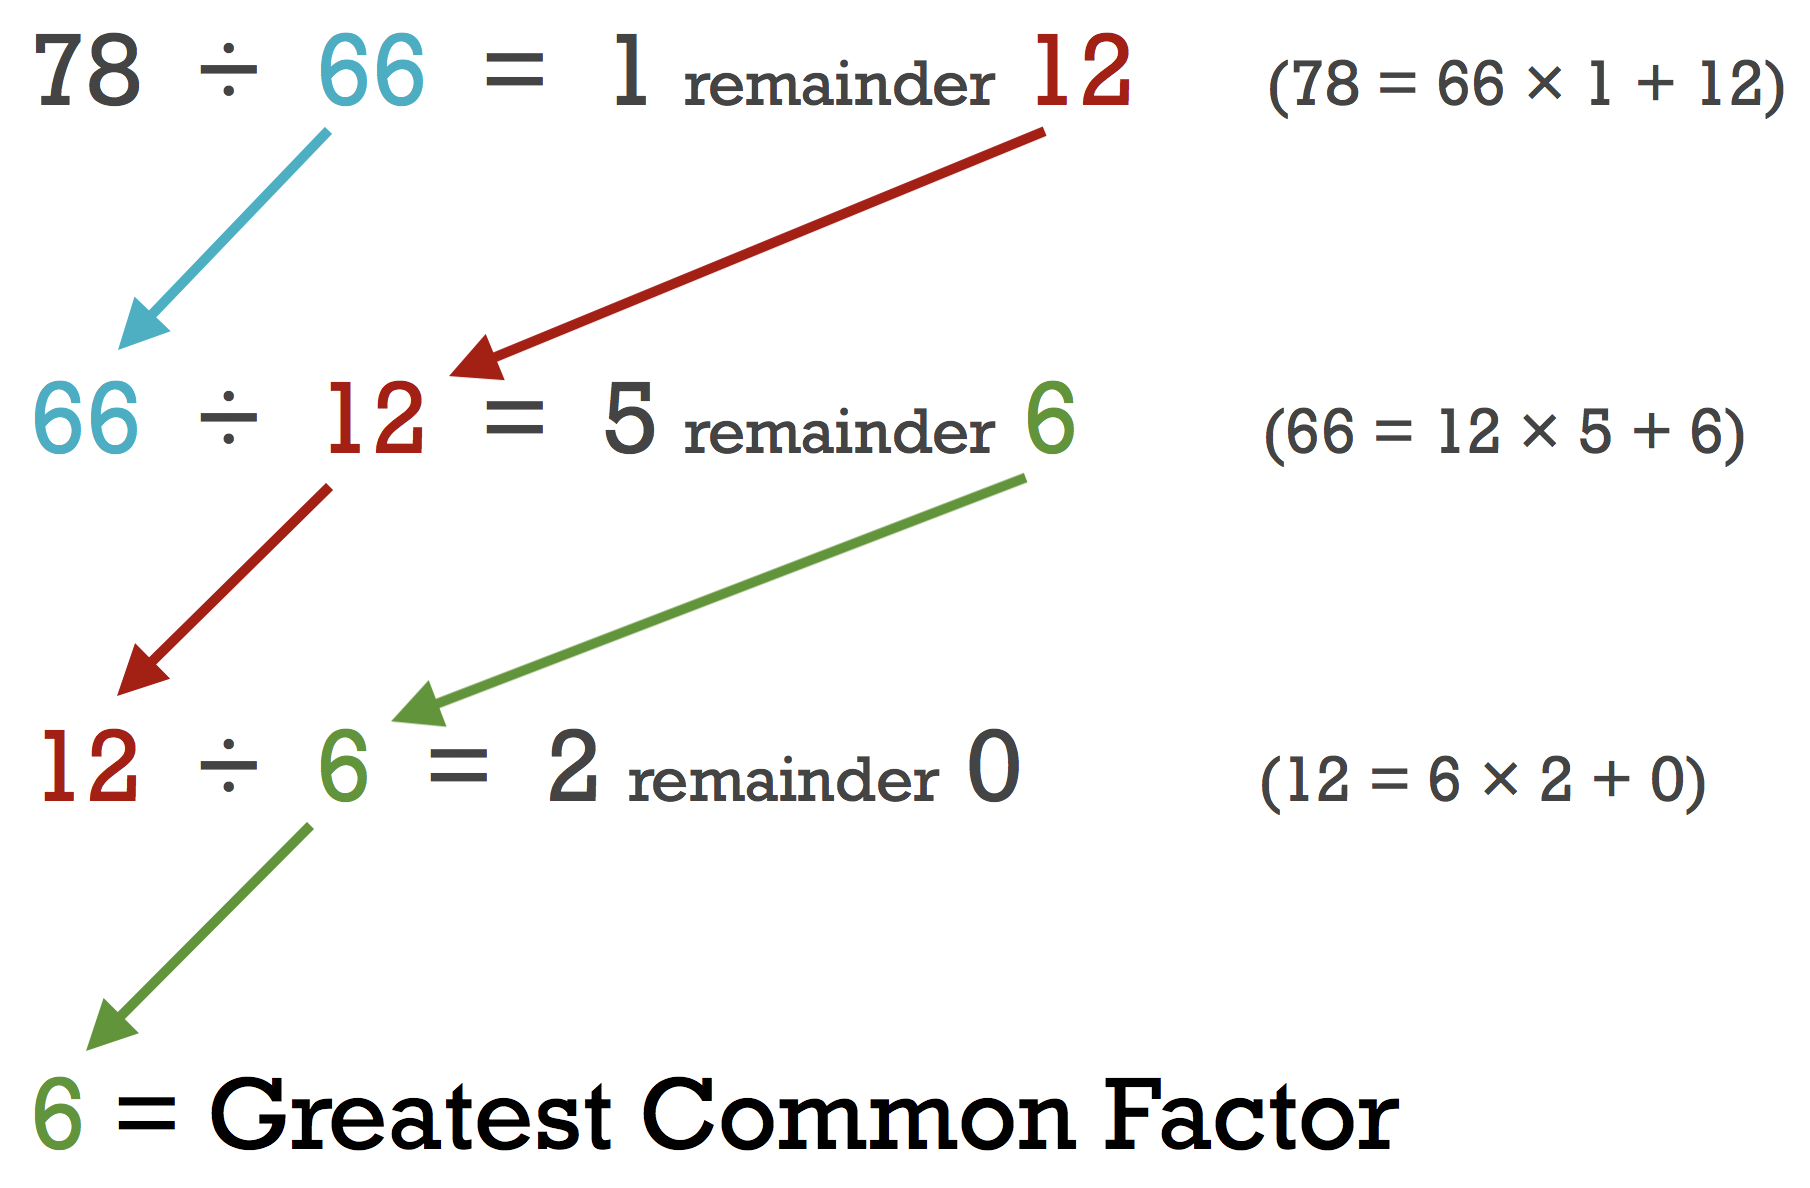 Equations using Euclid's algorithm proving that the greatest common factor of 78 and 66 is 6